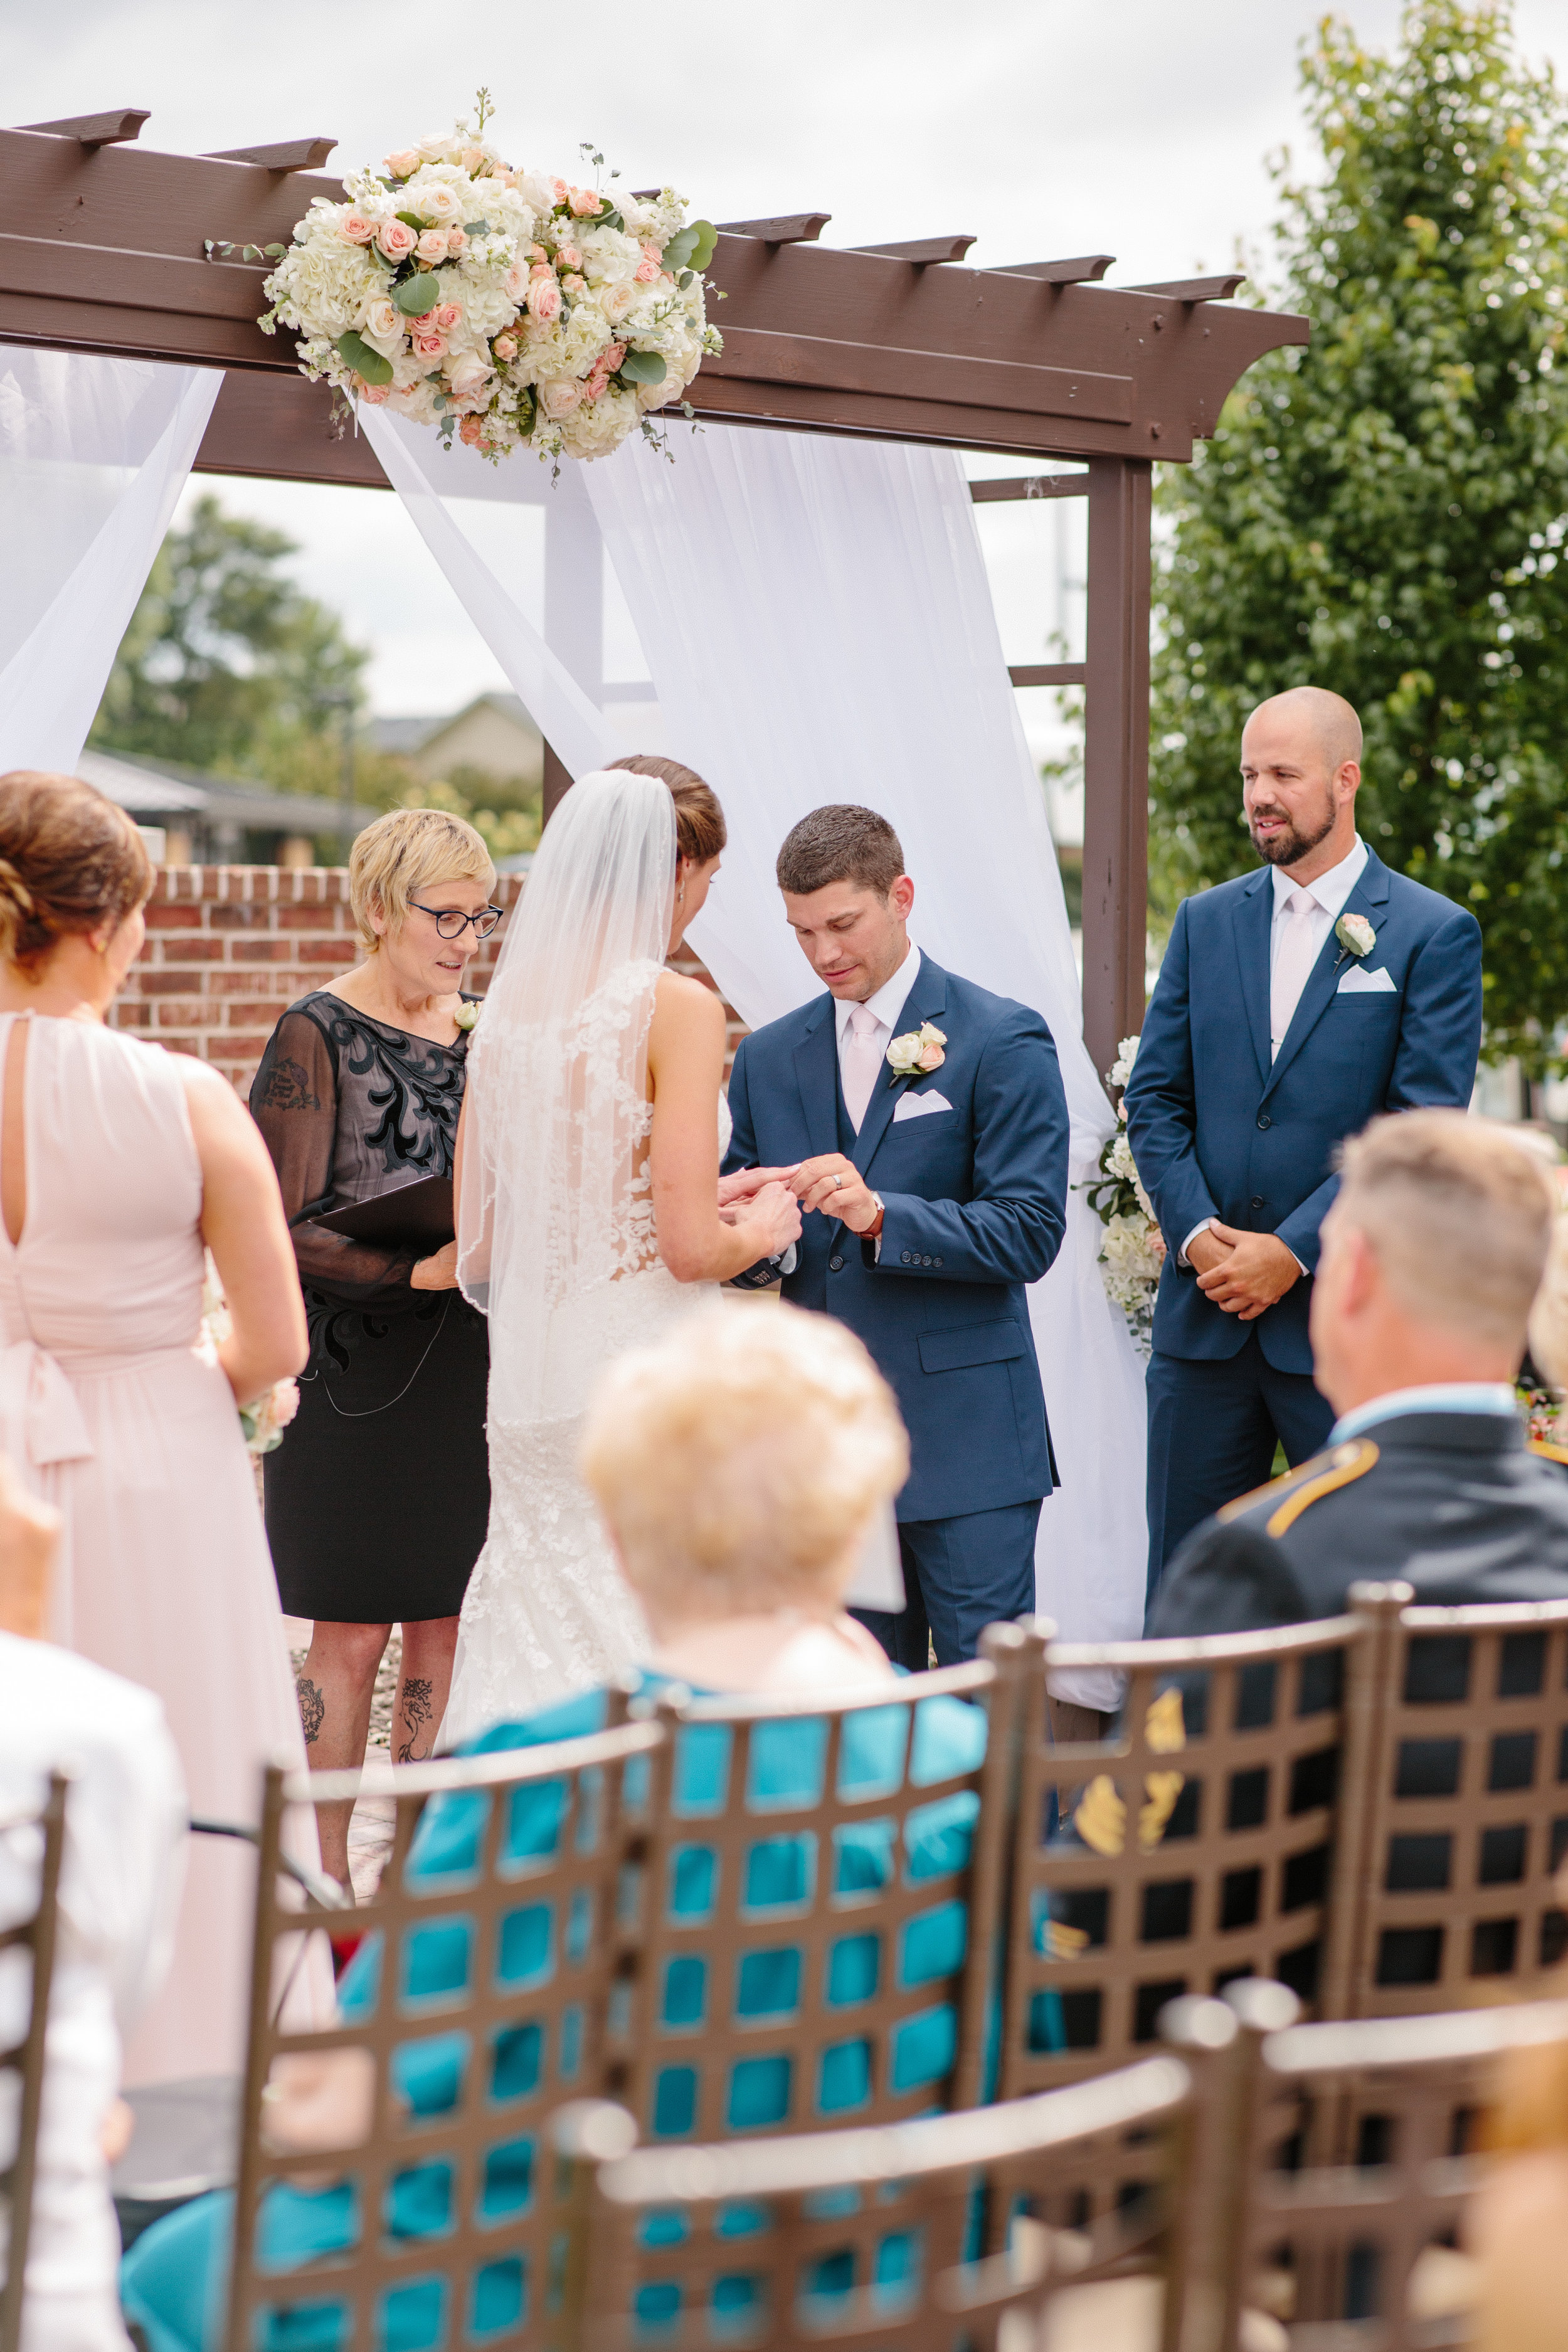 nicole_kyle_west_des_moines_iowa_wedding_photographers_45.jpg